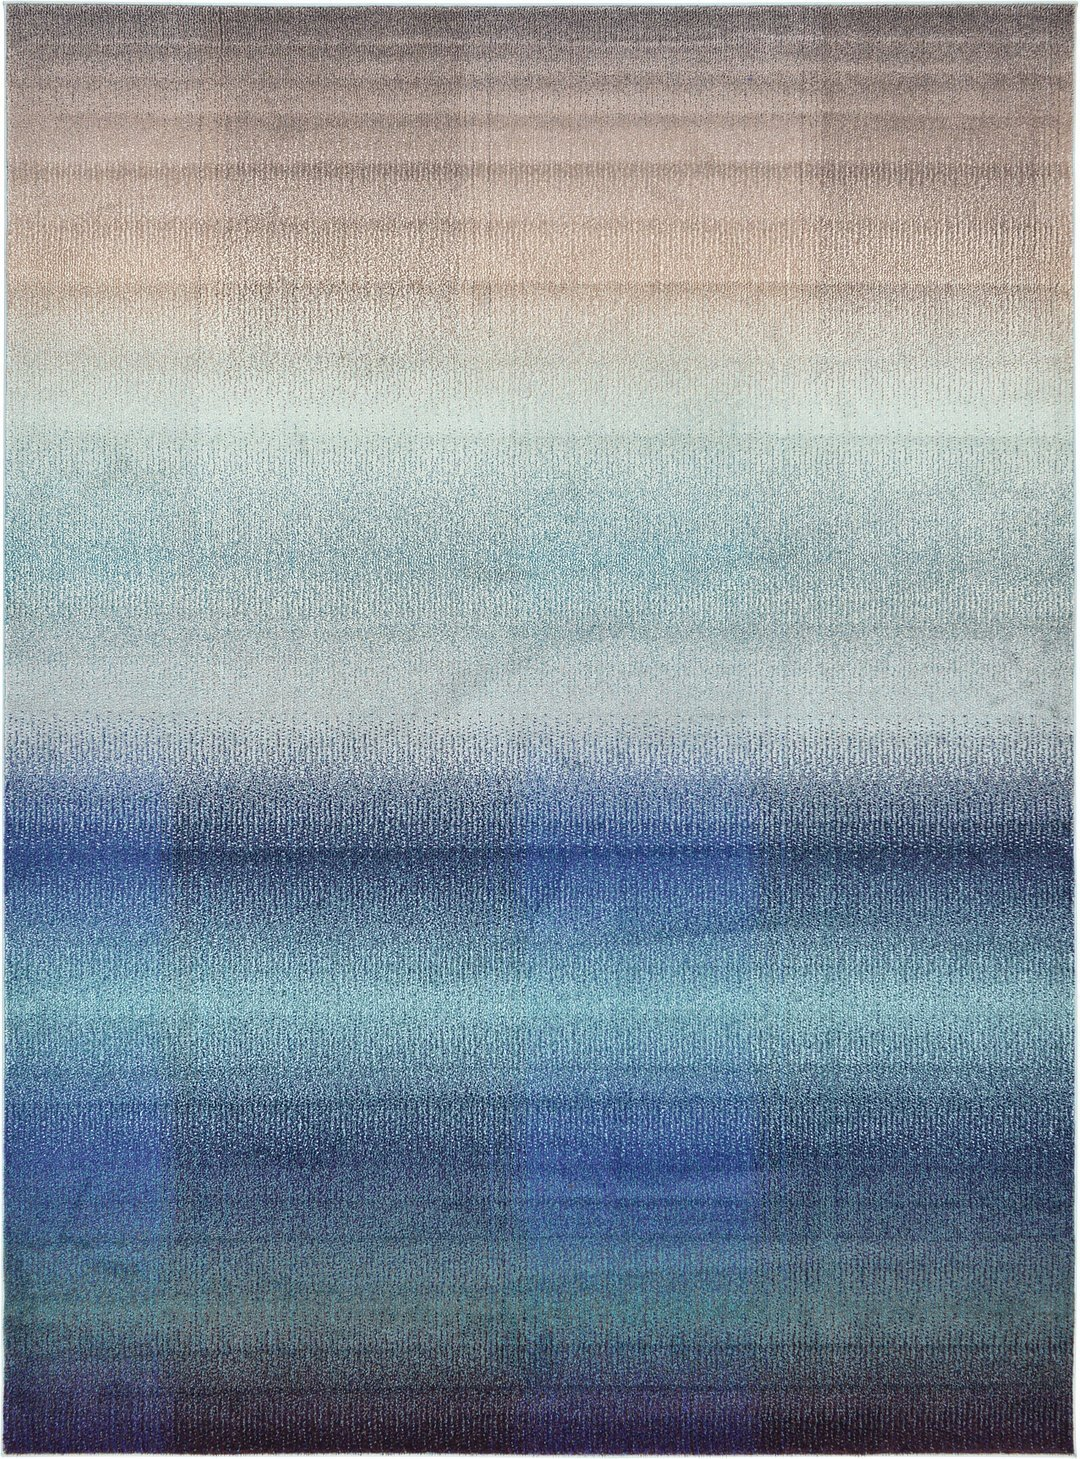 A2Z Rug Modern Mayfair Collection, Blue 8-Feed-by-11-Feed Area Rugs - Contemporary Living & Dinning & Bedroom Carpet